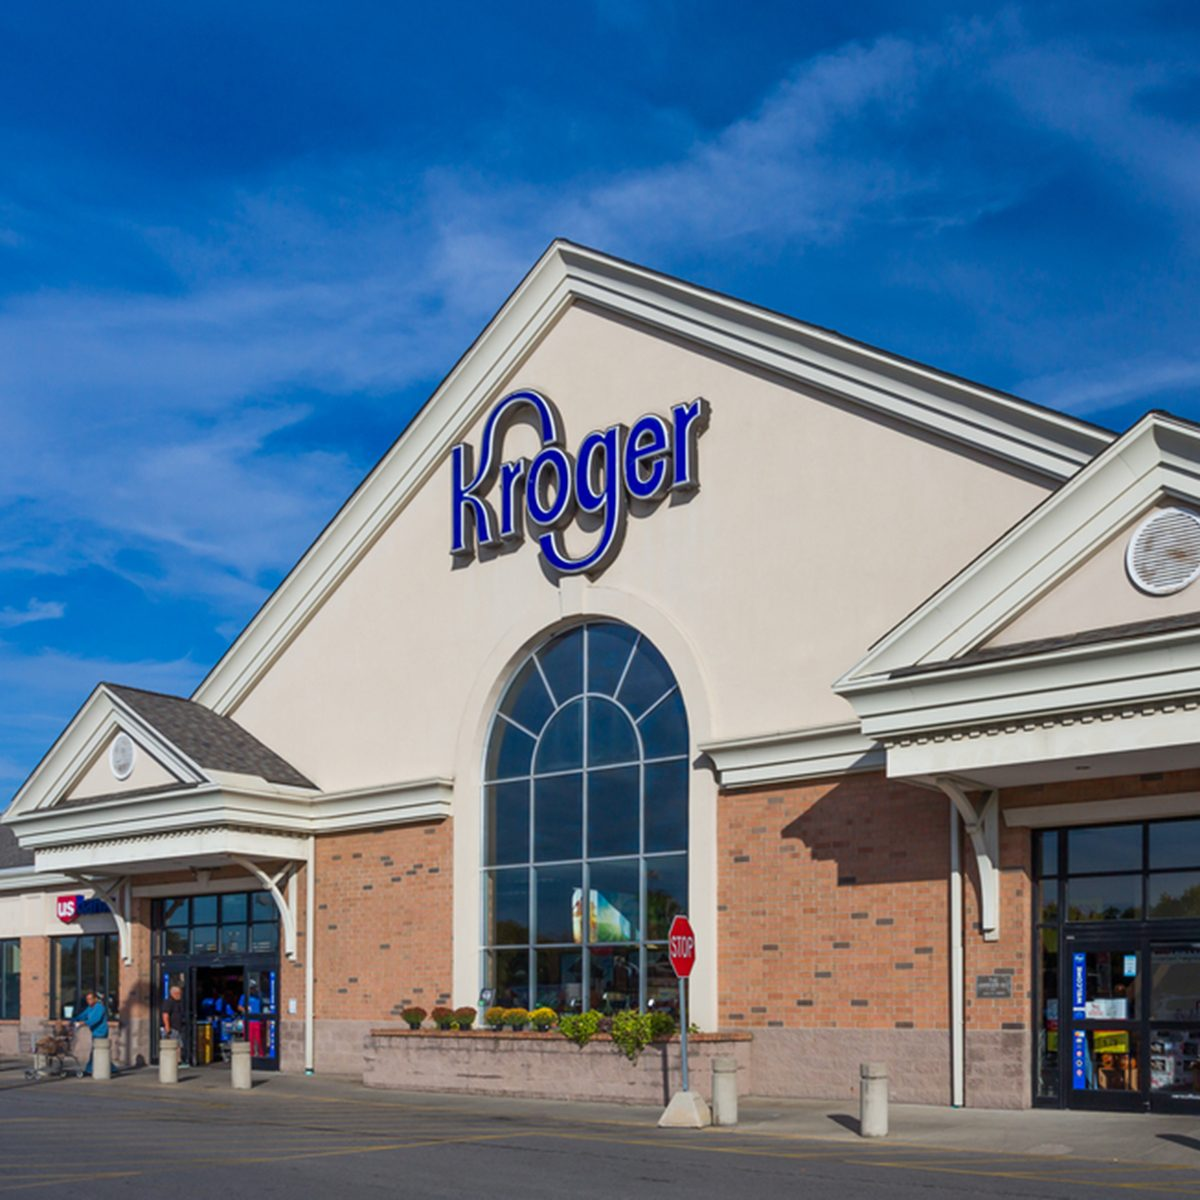 Kroger grocery store exterior and logo.